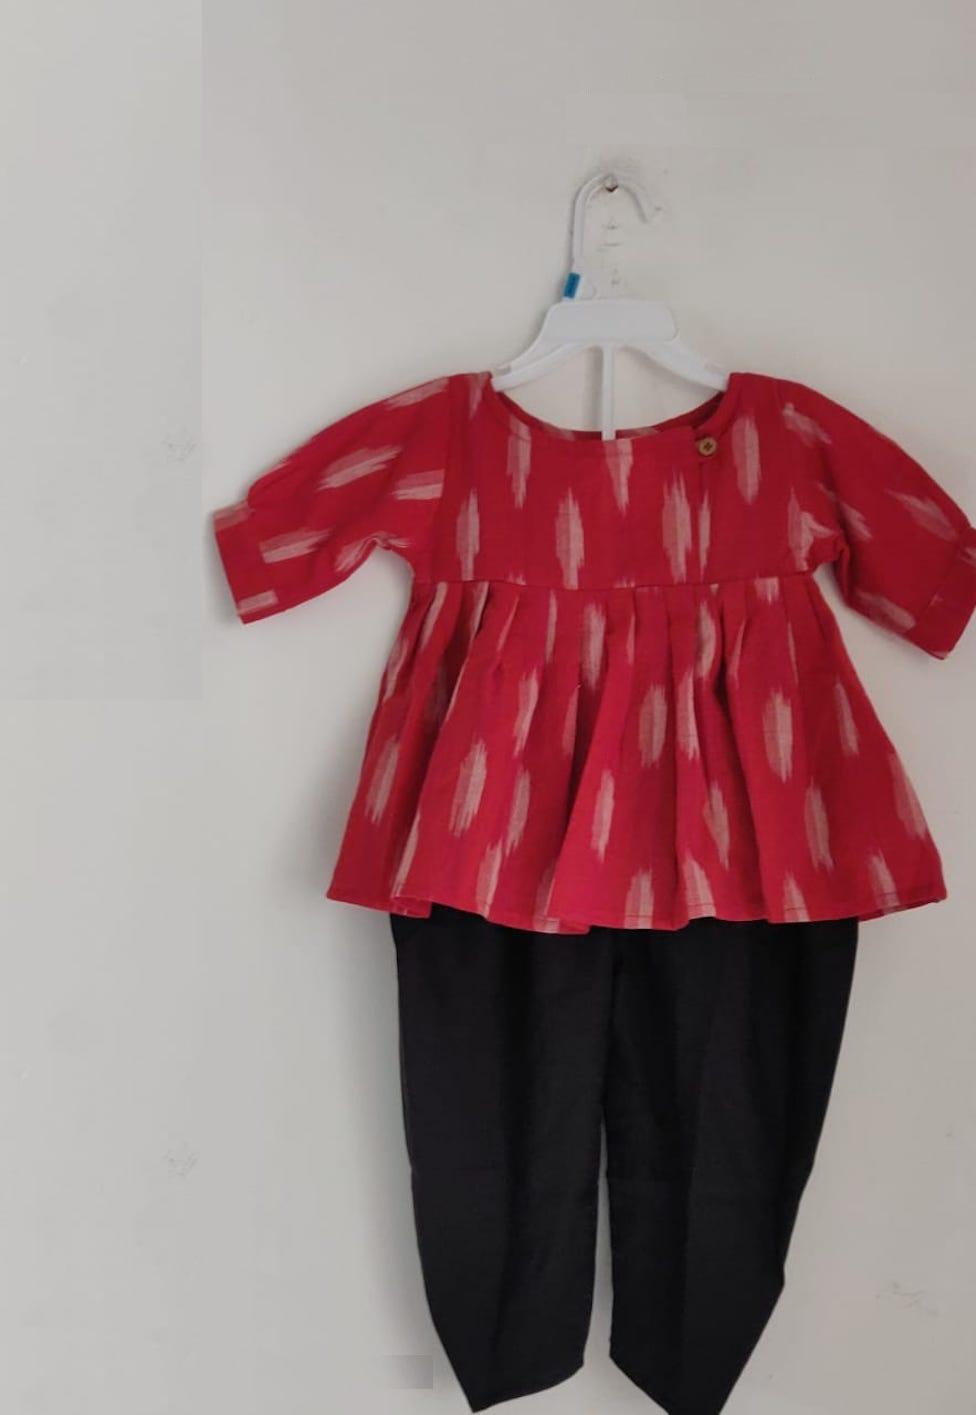 [Available] Girls Red & Black Kurta Dhoti Set [Size: 7-8 yrs]